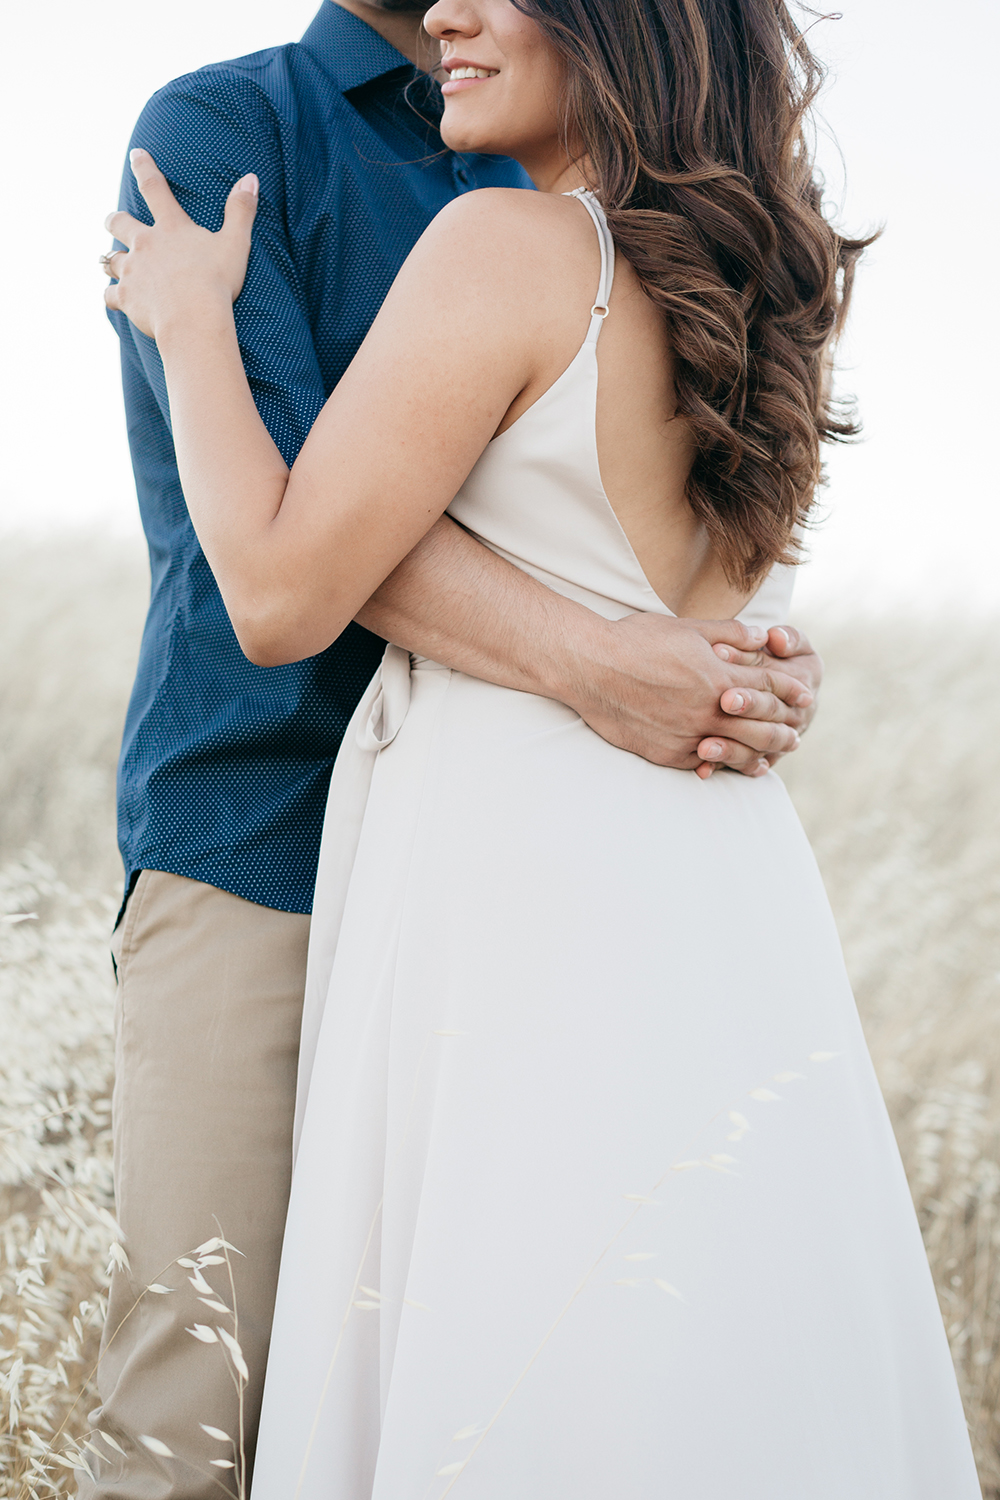 nancy and manuel's engagement session photos in mt. tamalpais california.